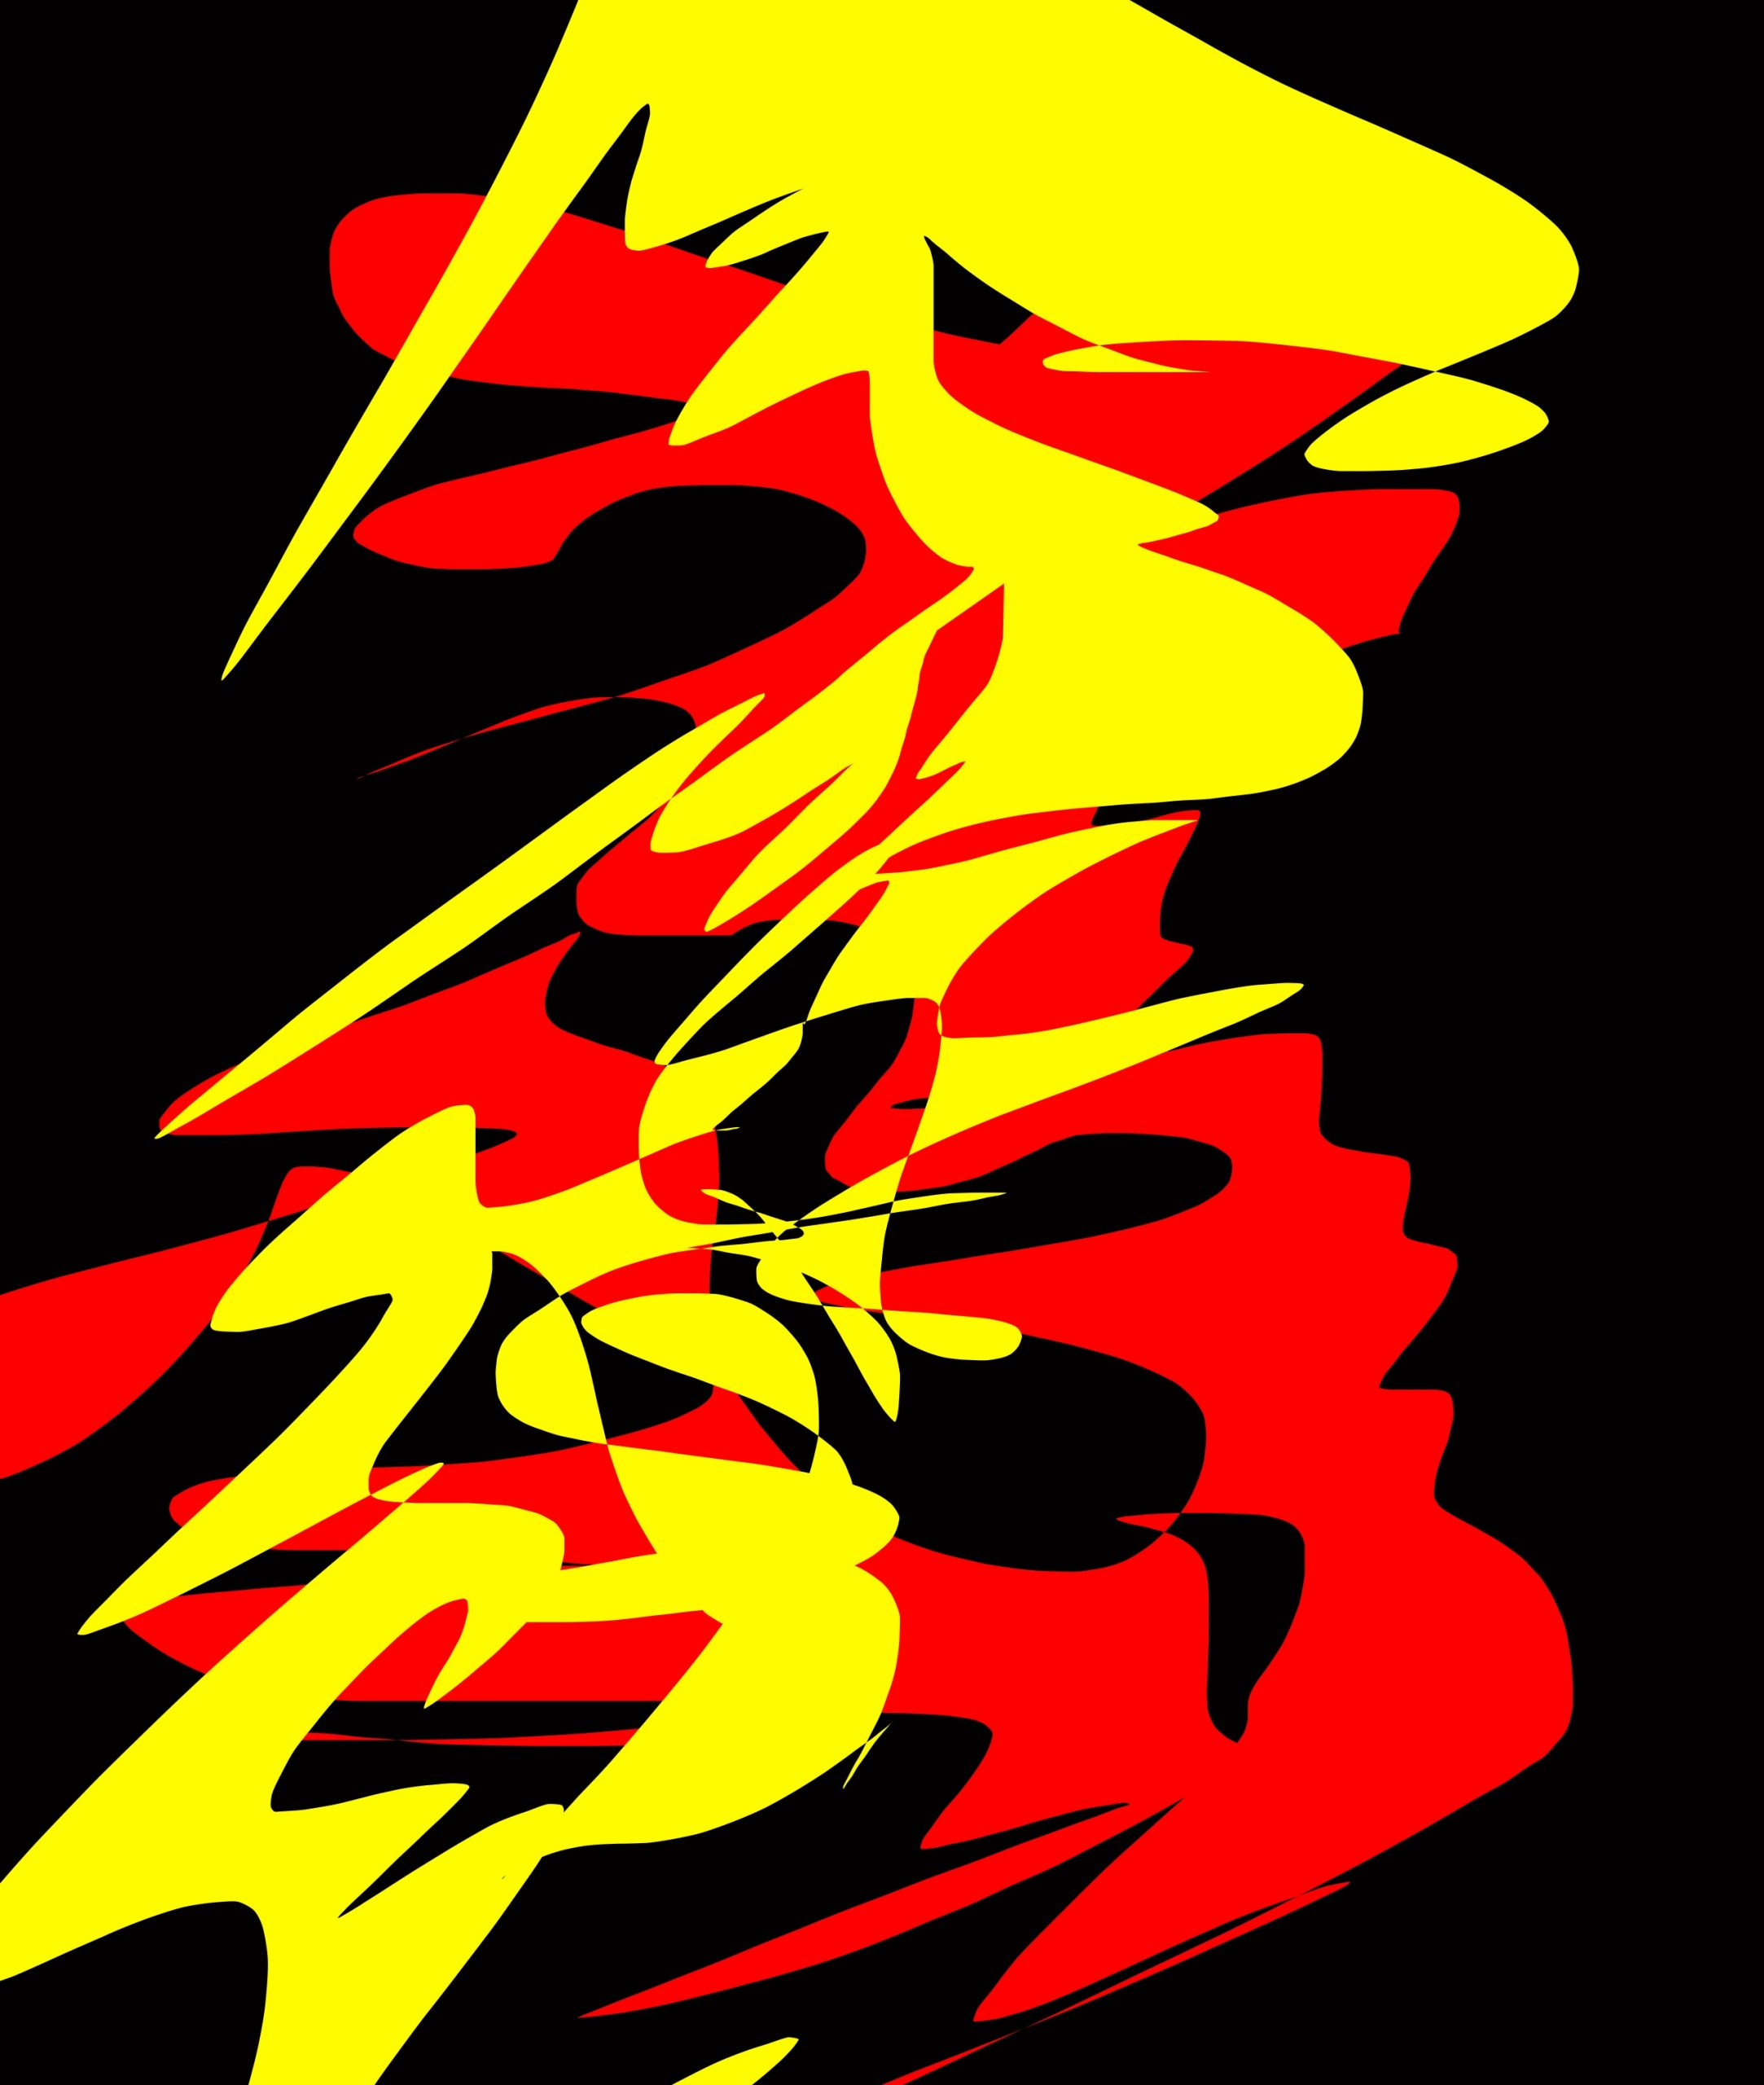 yellow red abstract